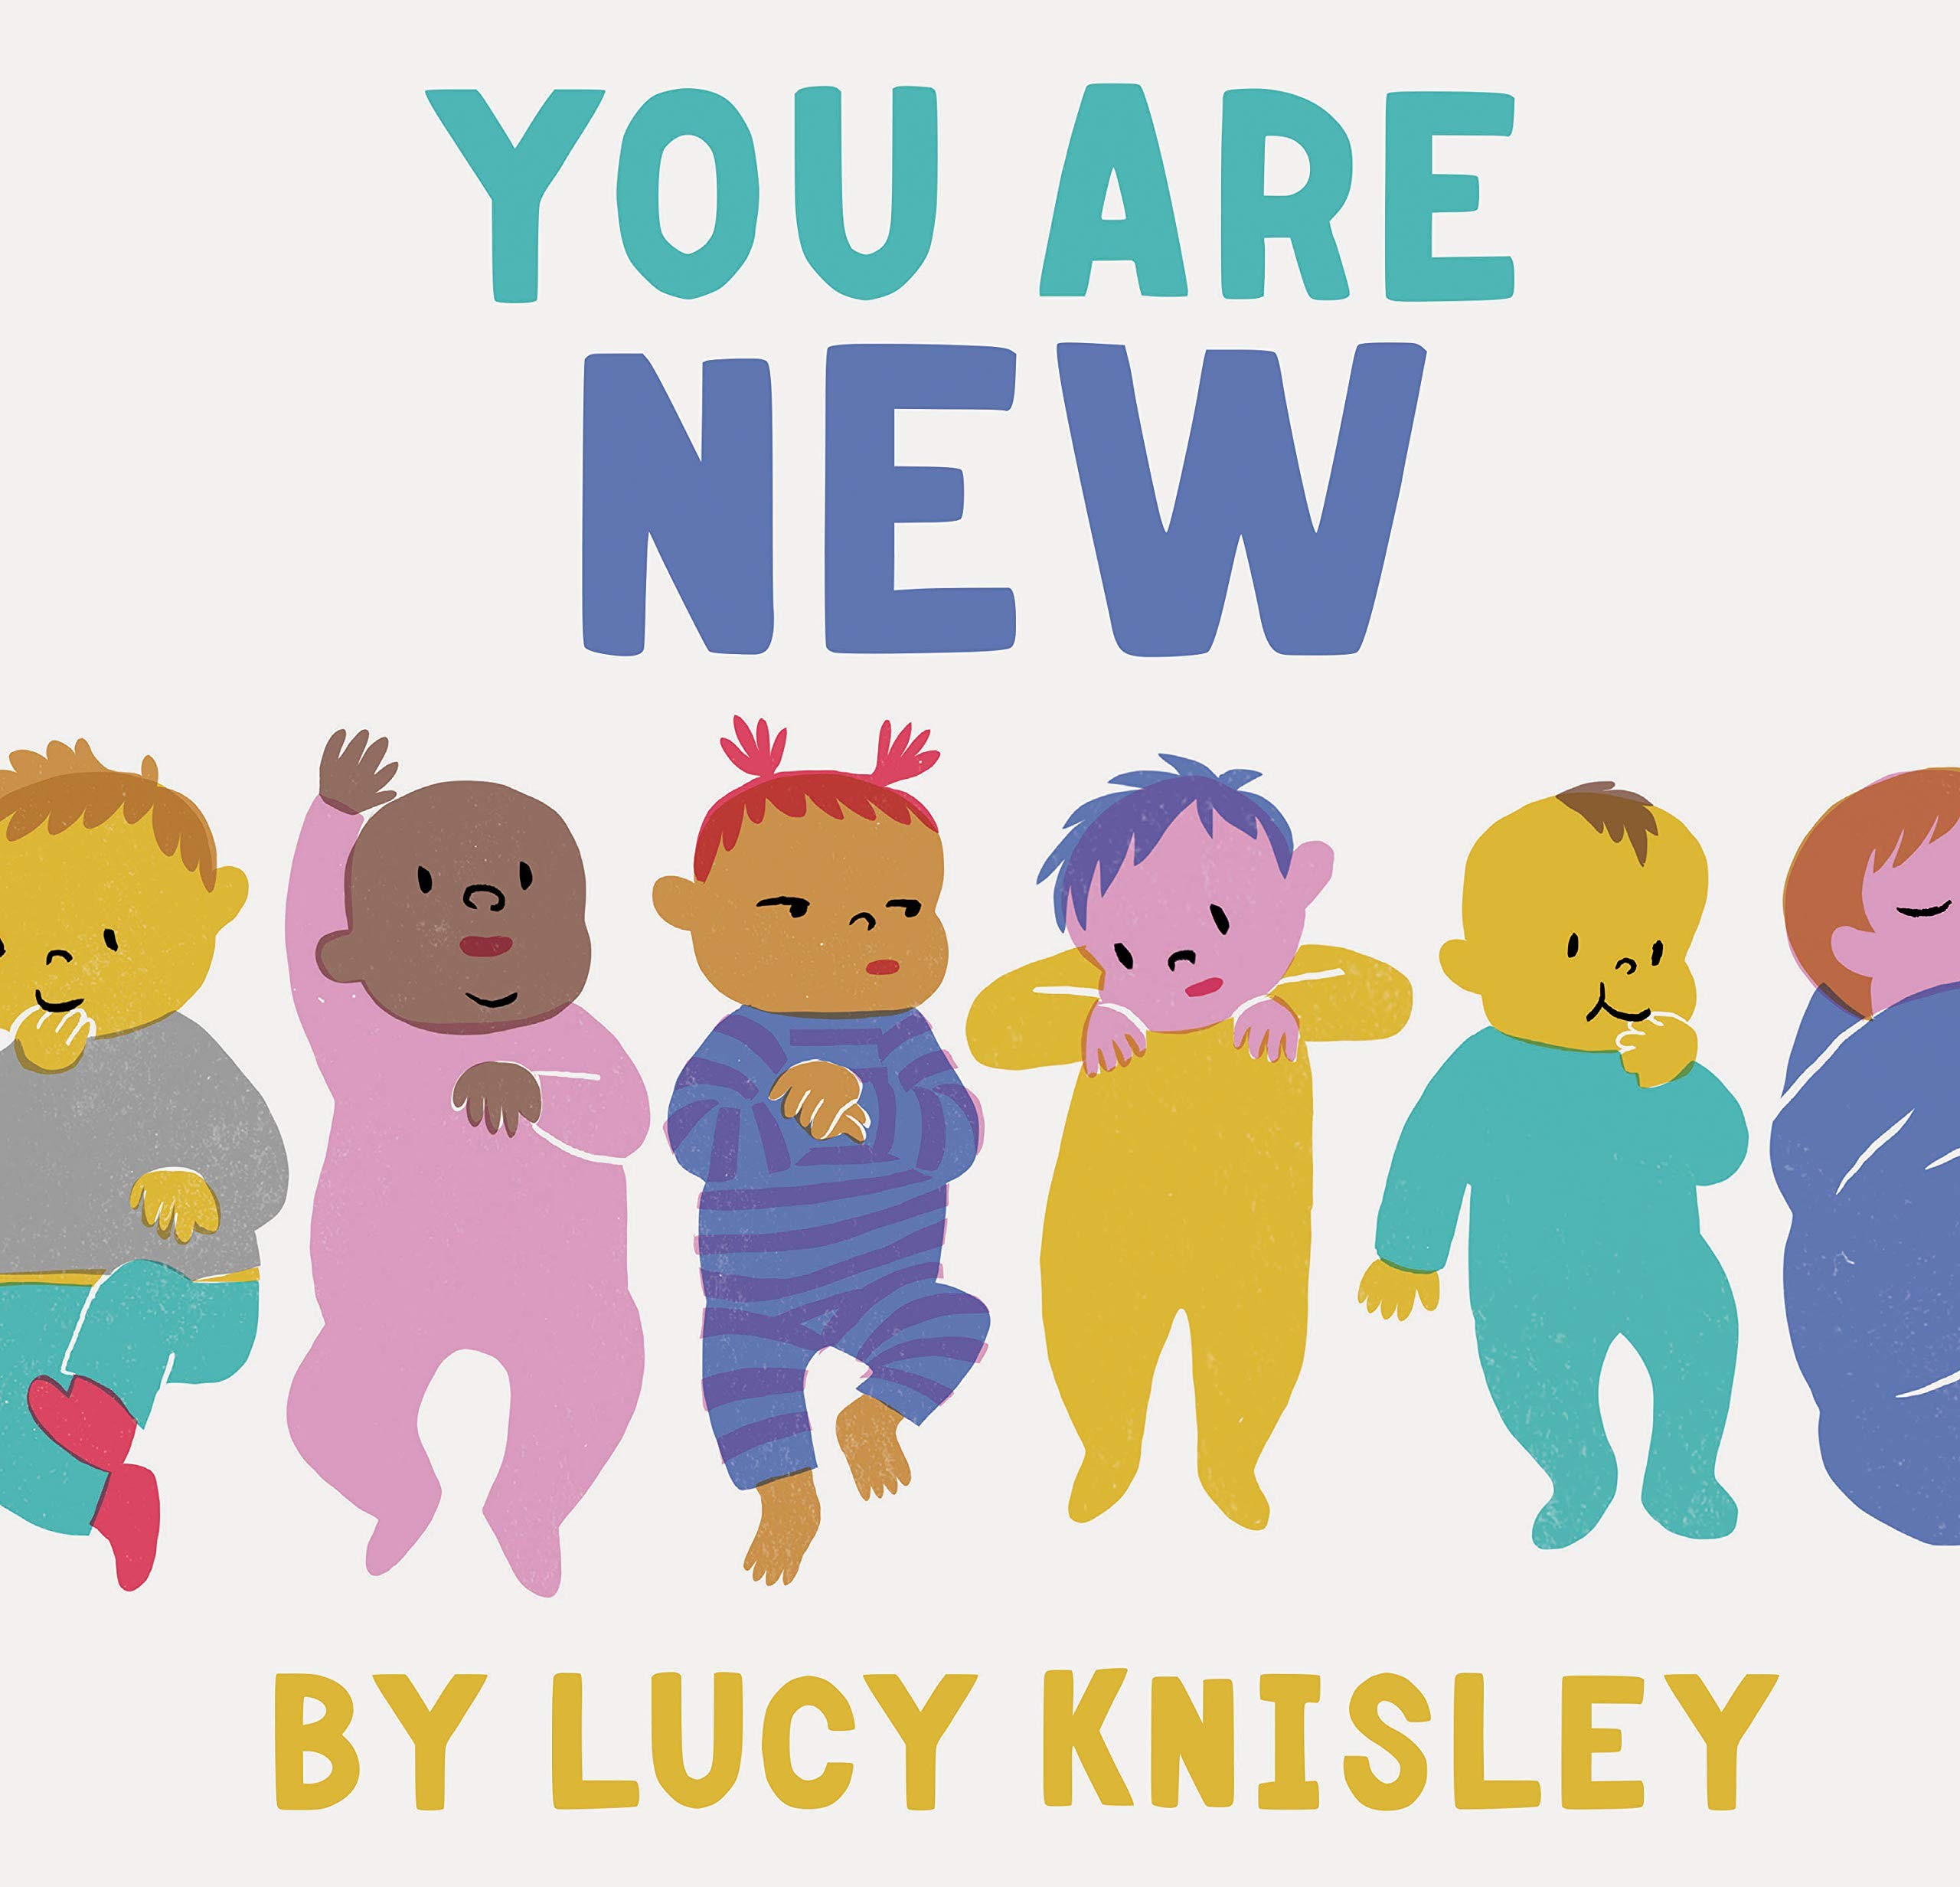 You Are New New Baby Books For Kids Expectant Mother Book Baby Story Book Knisley Lucy 9781452161563 Amazon Com Books